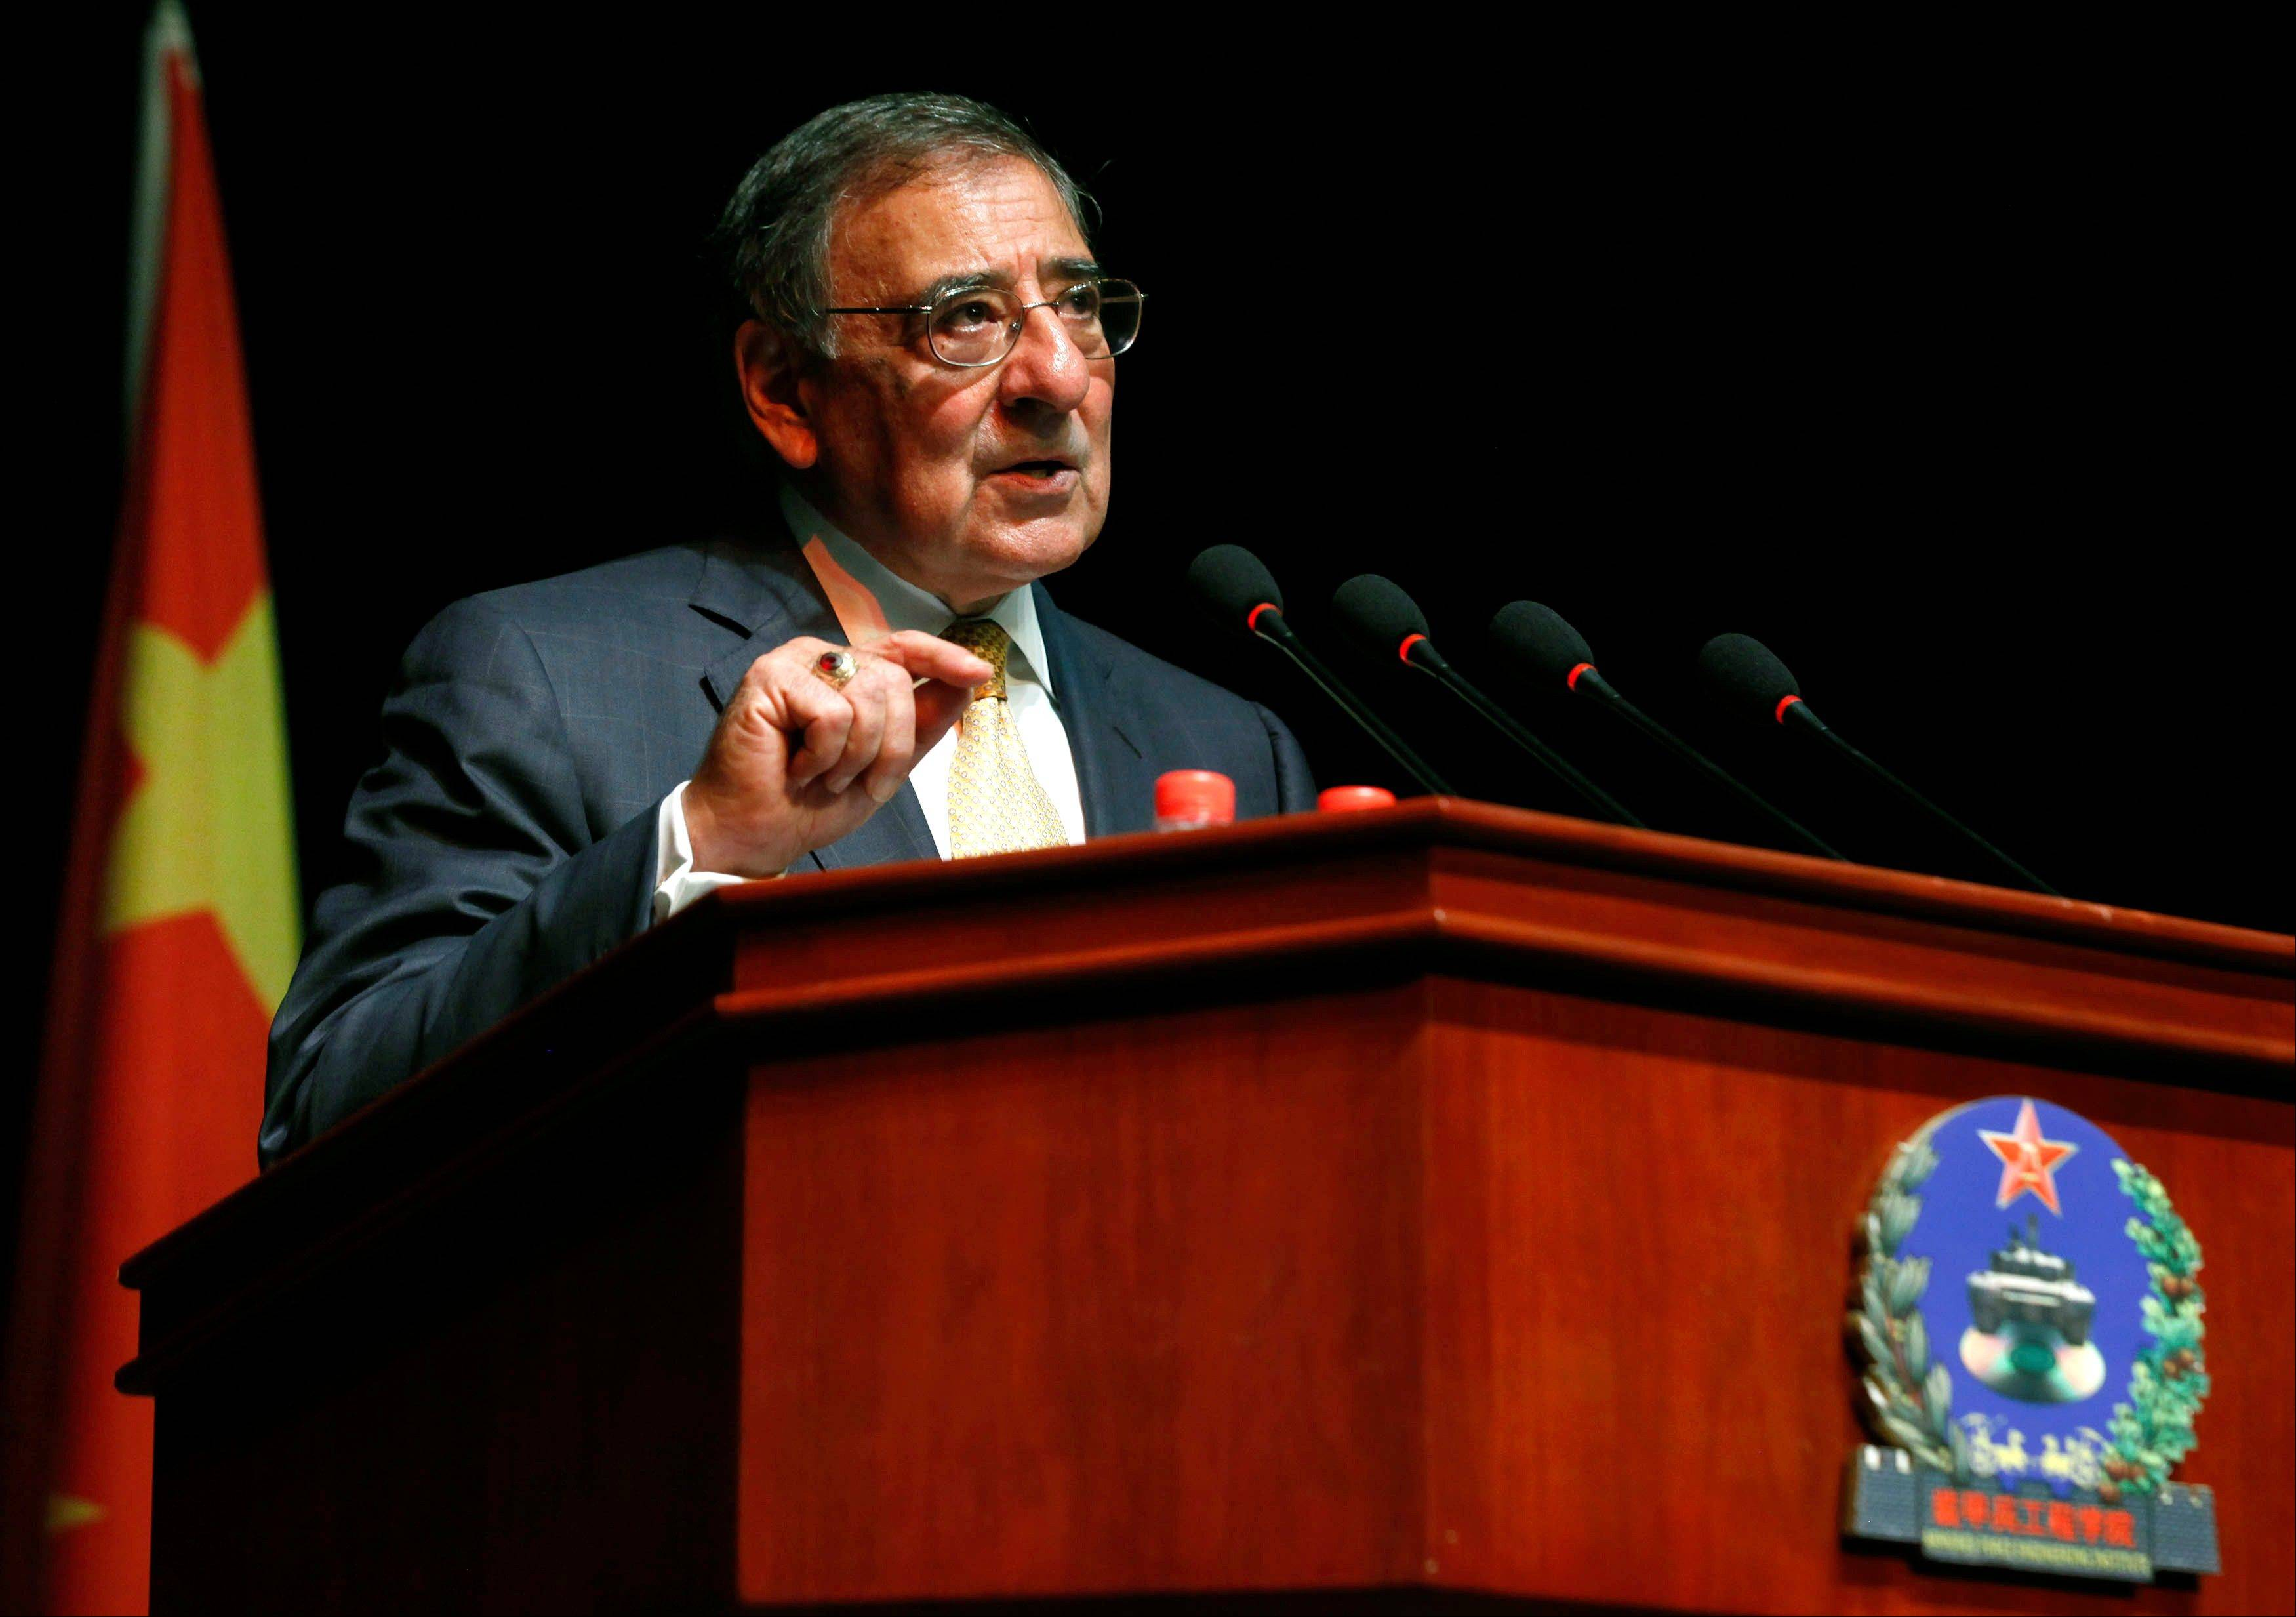 U.S. Secretary of Defense Leon Panetta addresses cadets at the Engineering Academy of PLA Armored Forces, in Beijing, Wednesday, Sept. 19, 2012.